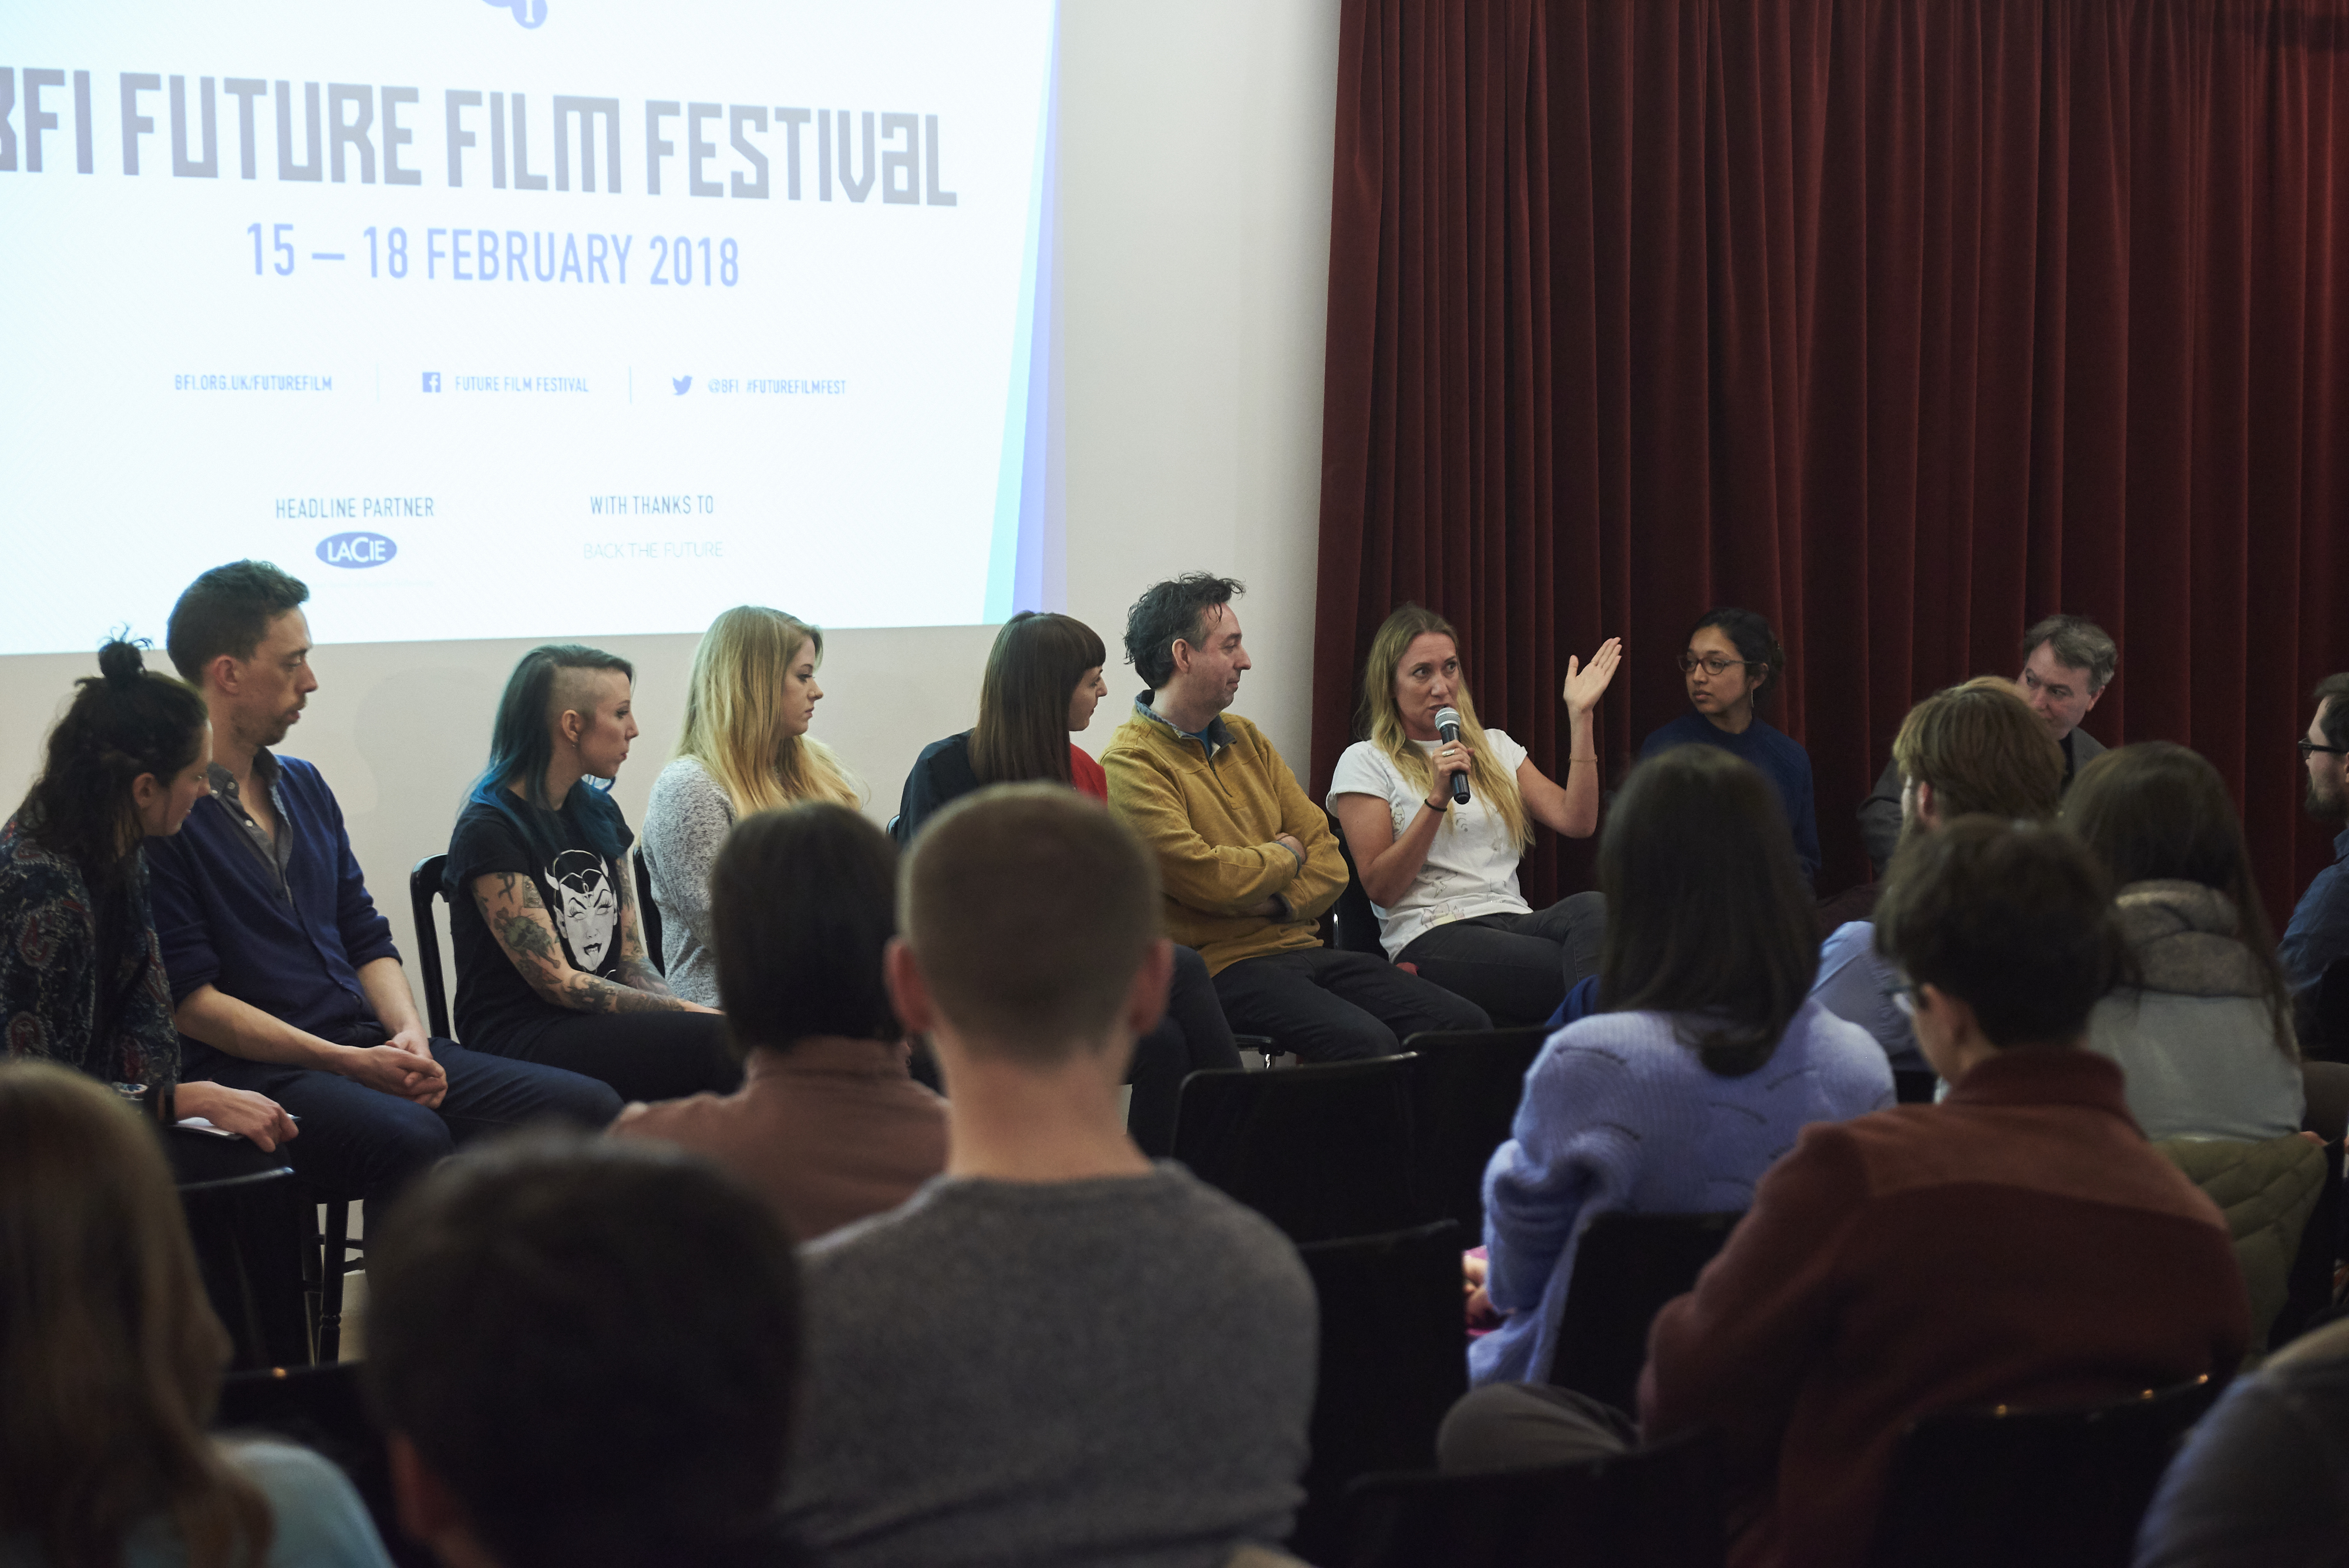 BFI Future Film Festival back in 2018